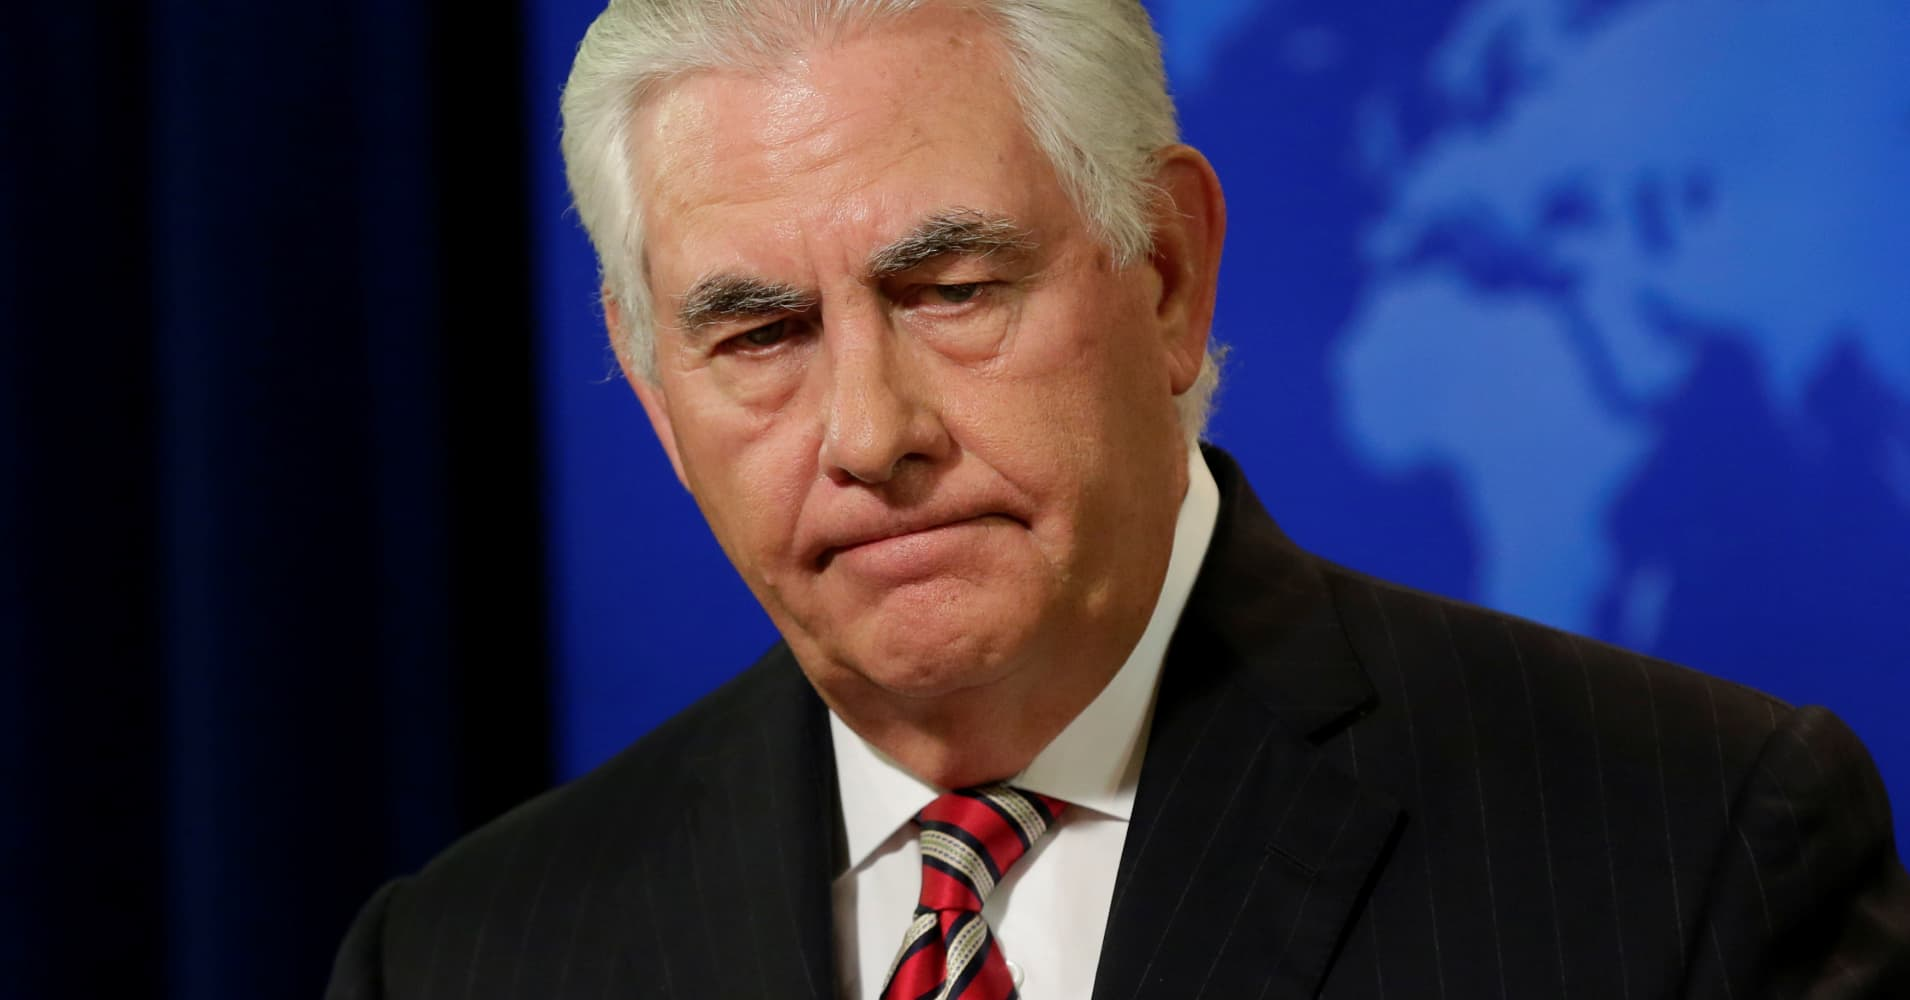 Tillerson called Trump a moron says report